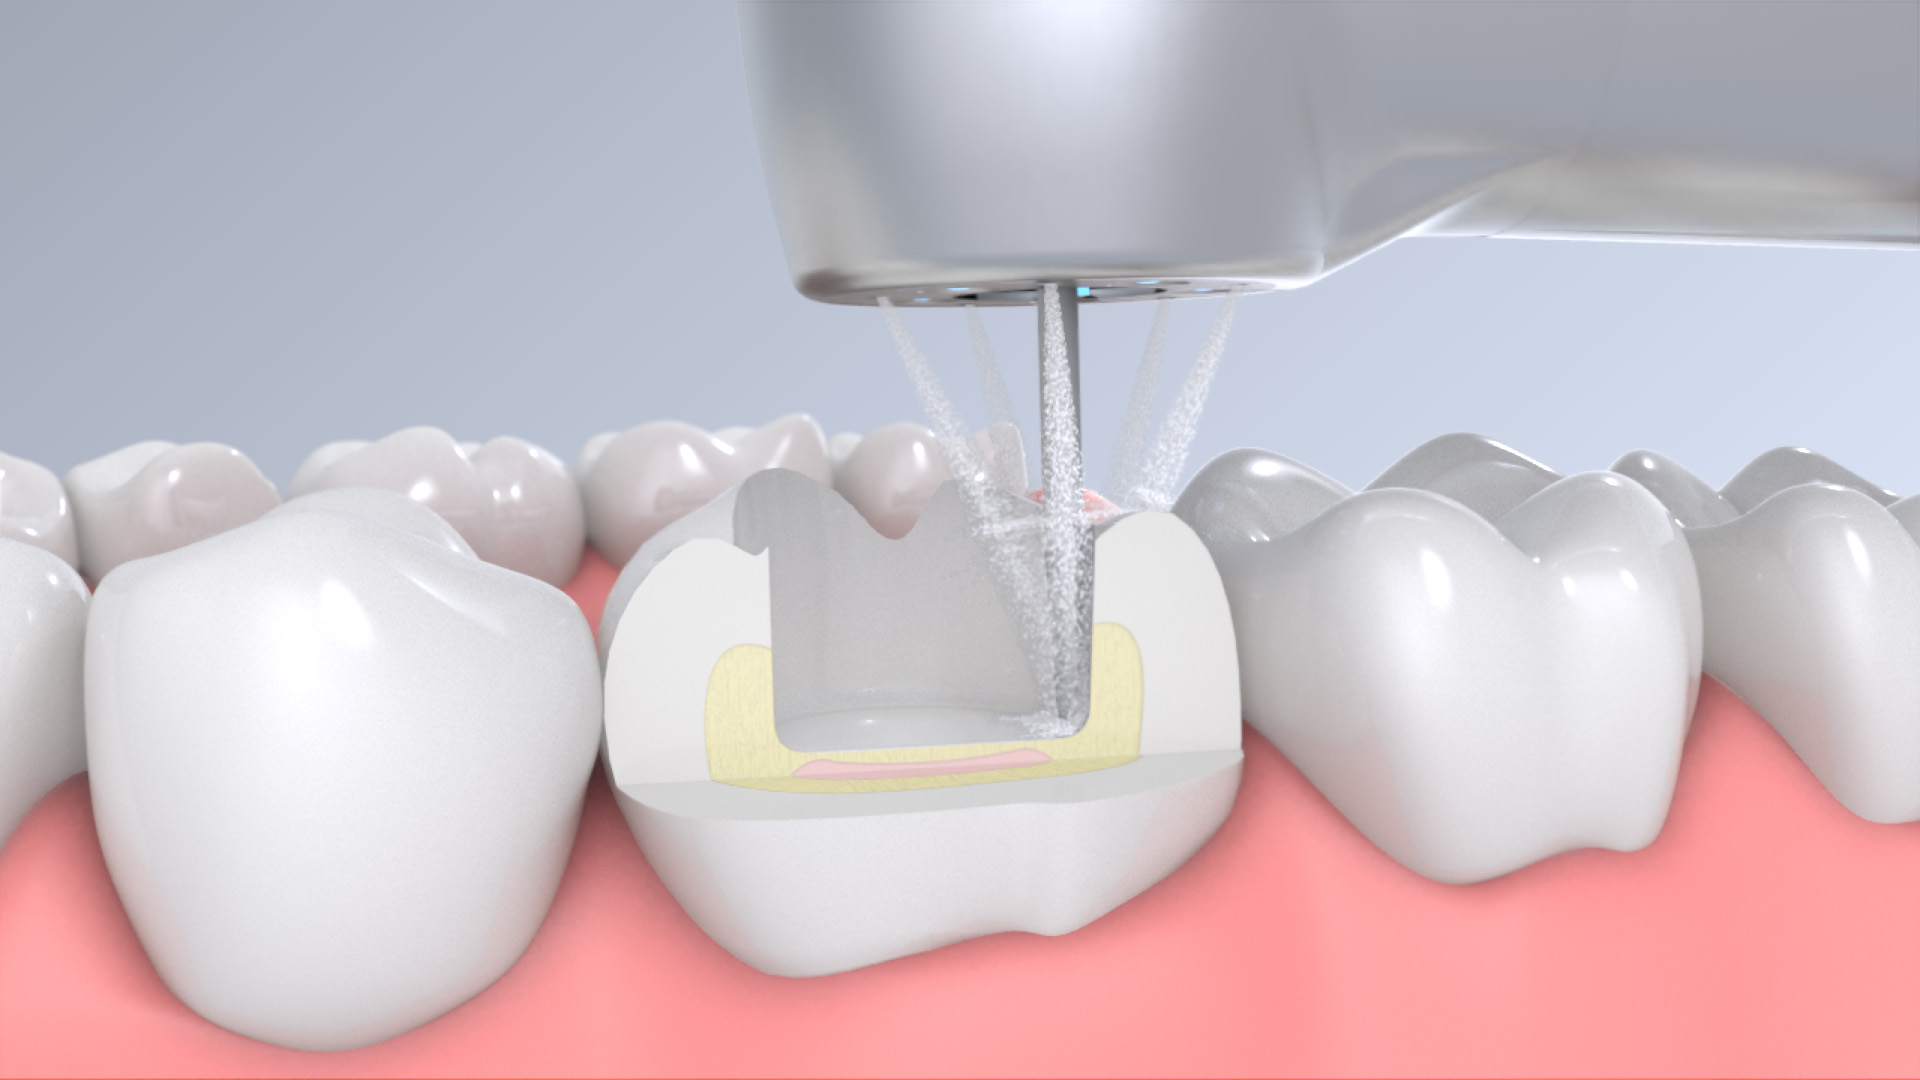 What's the purpose of the water spray at dental highspeed handpieces?